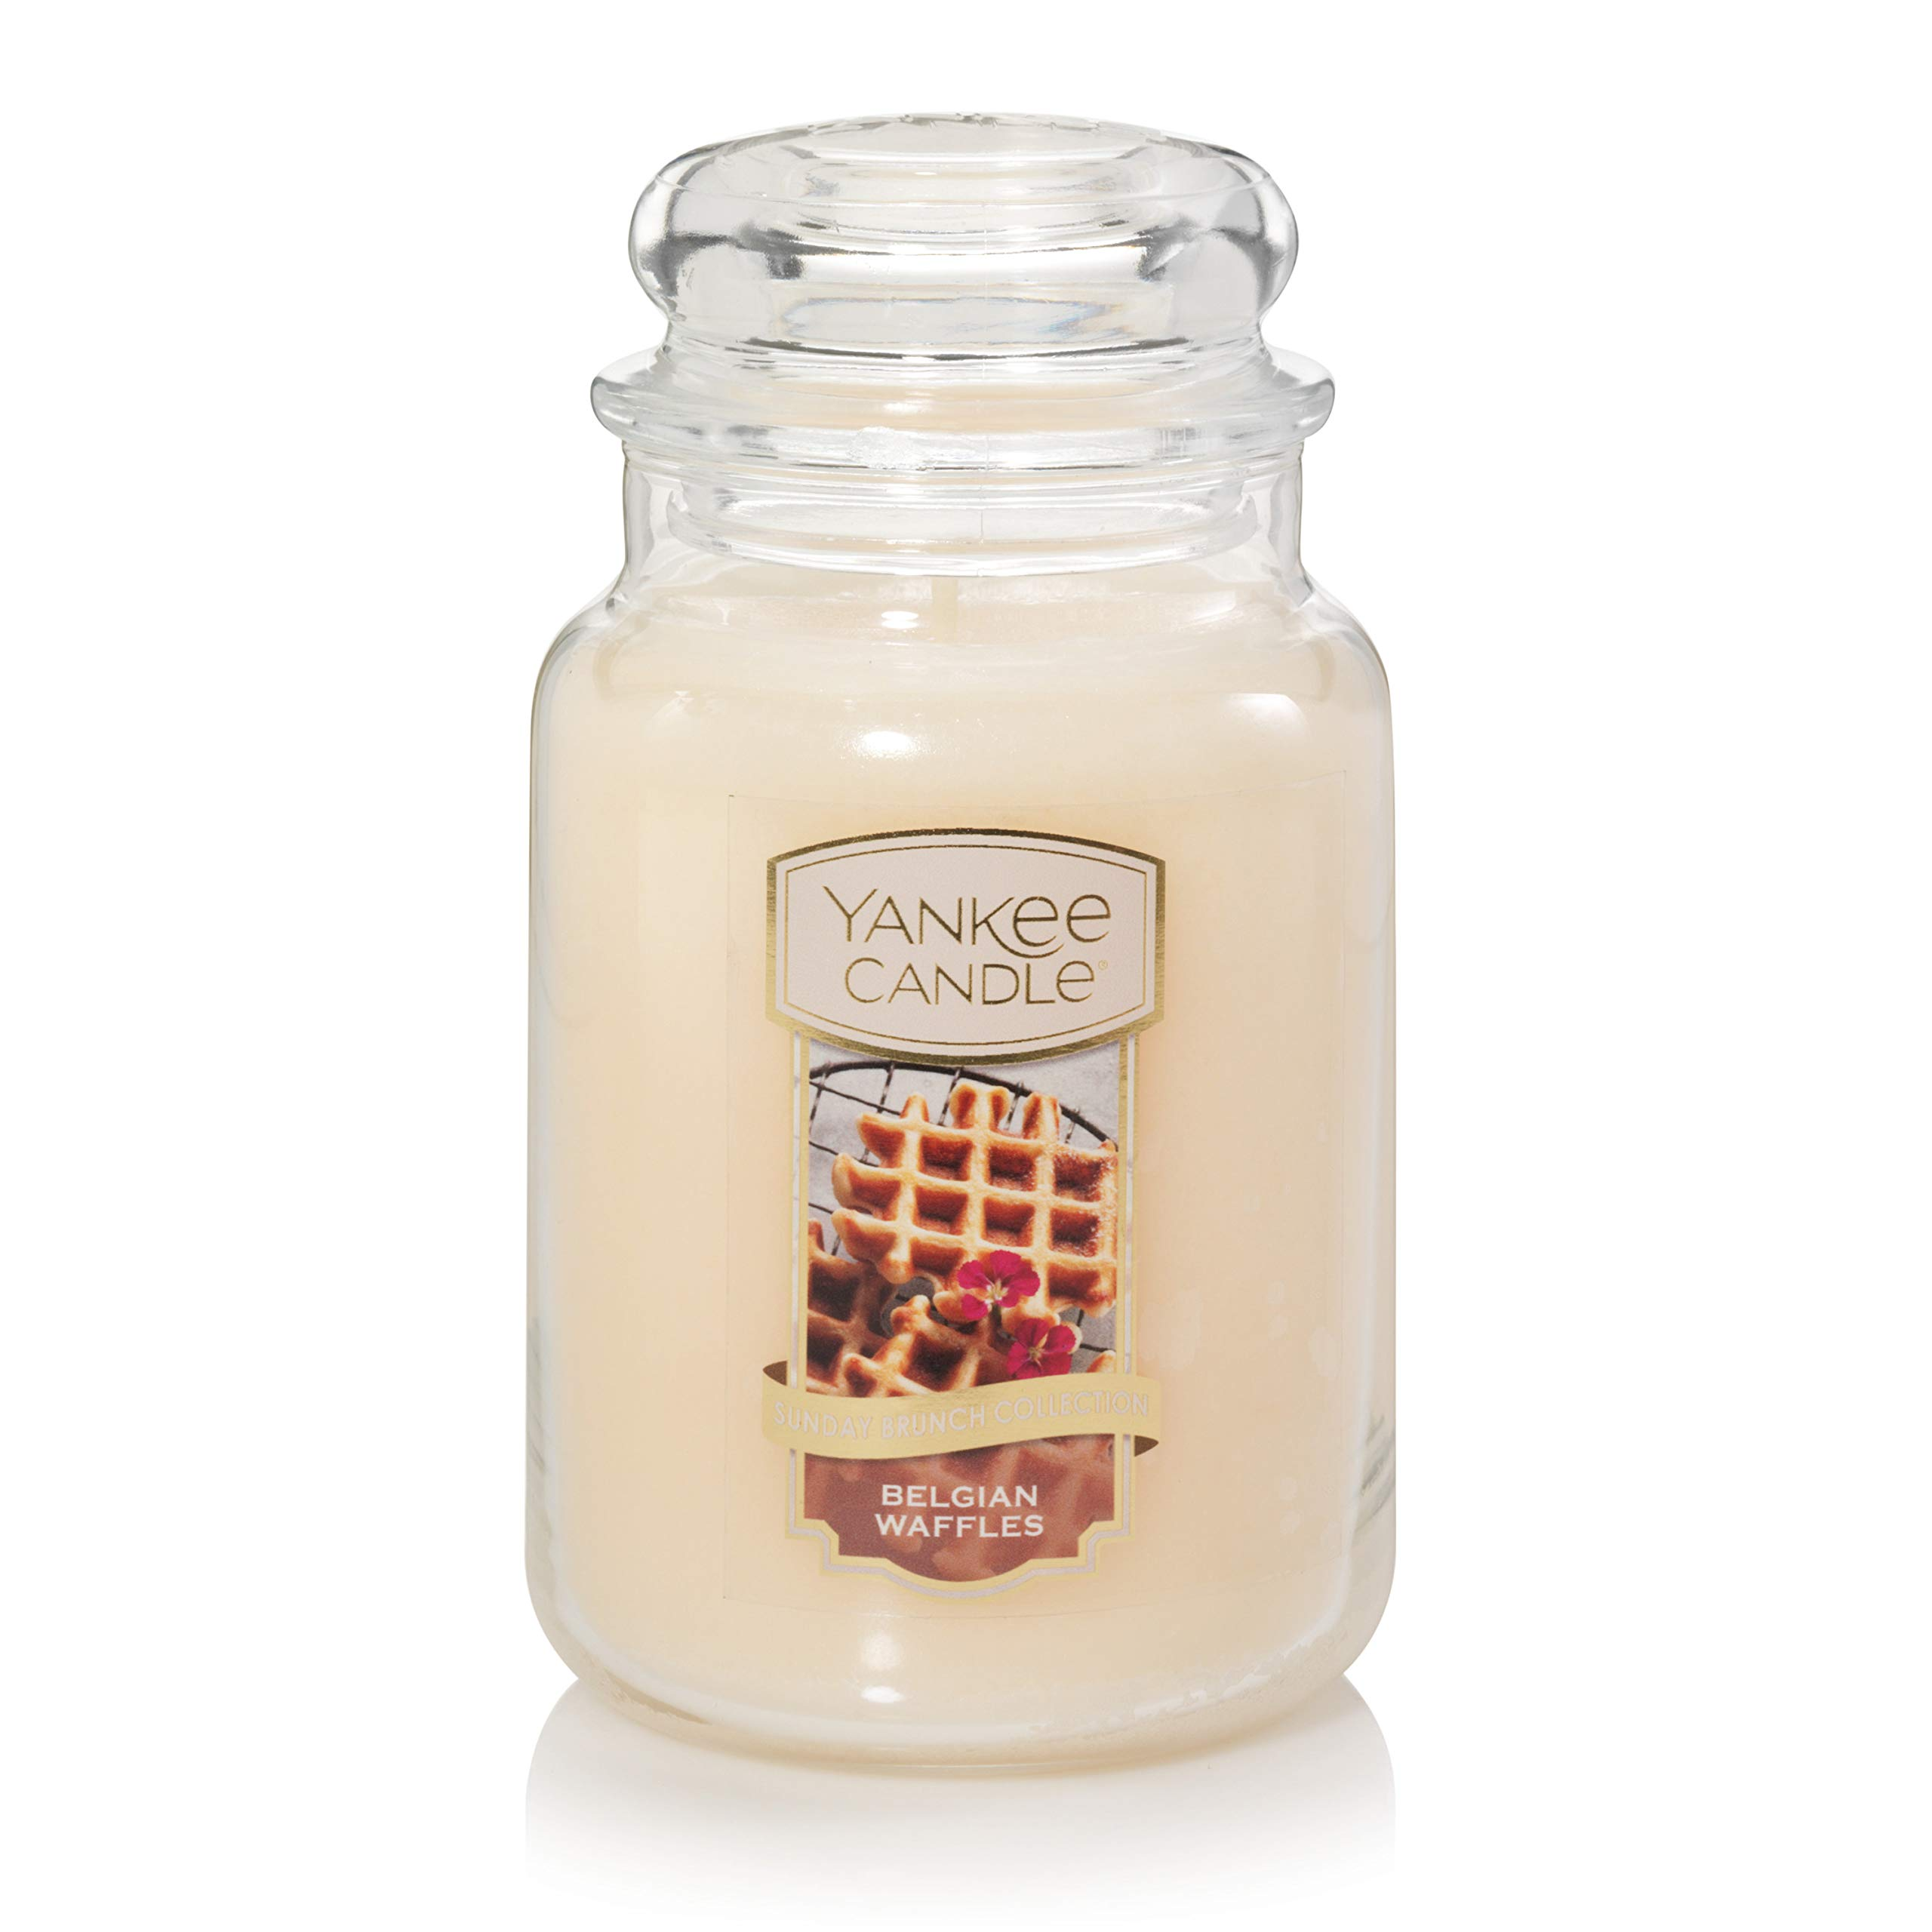 Yankee Candle | Sunday Brunch Collection | Large Jar Scented Candle | Belgian Waffle